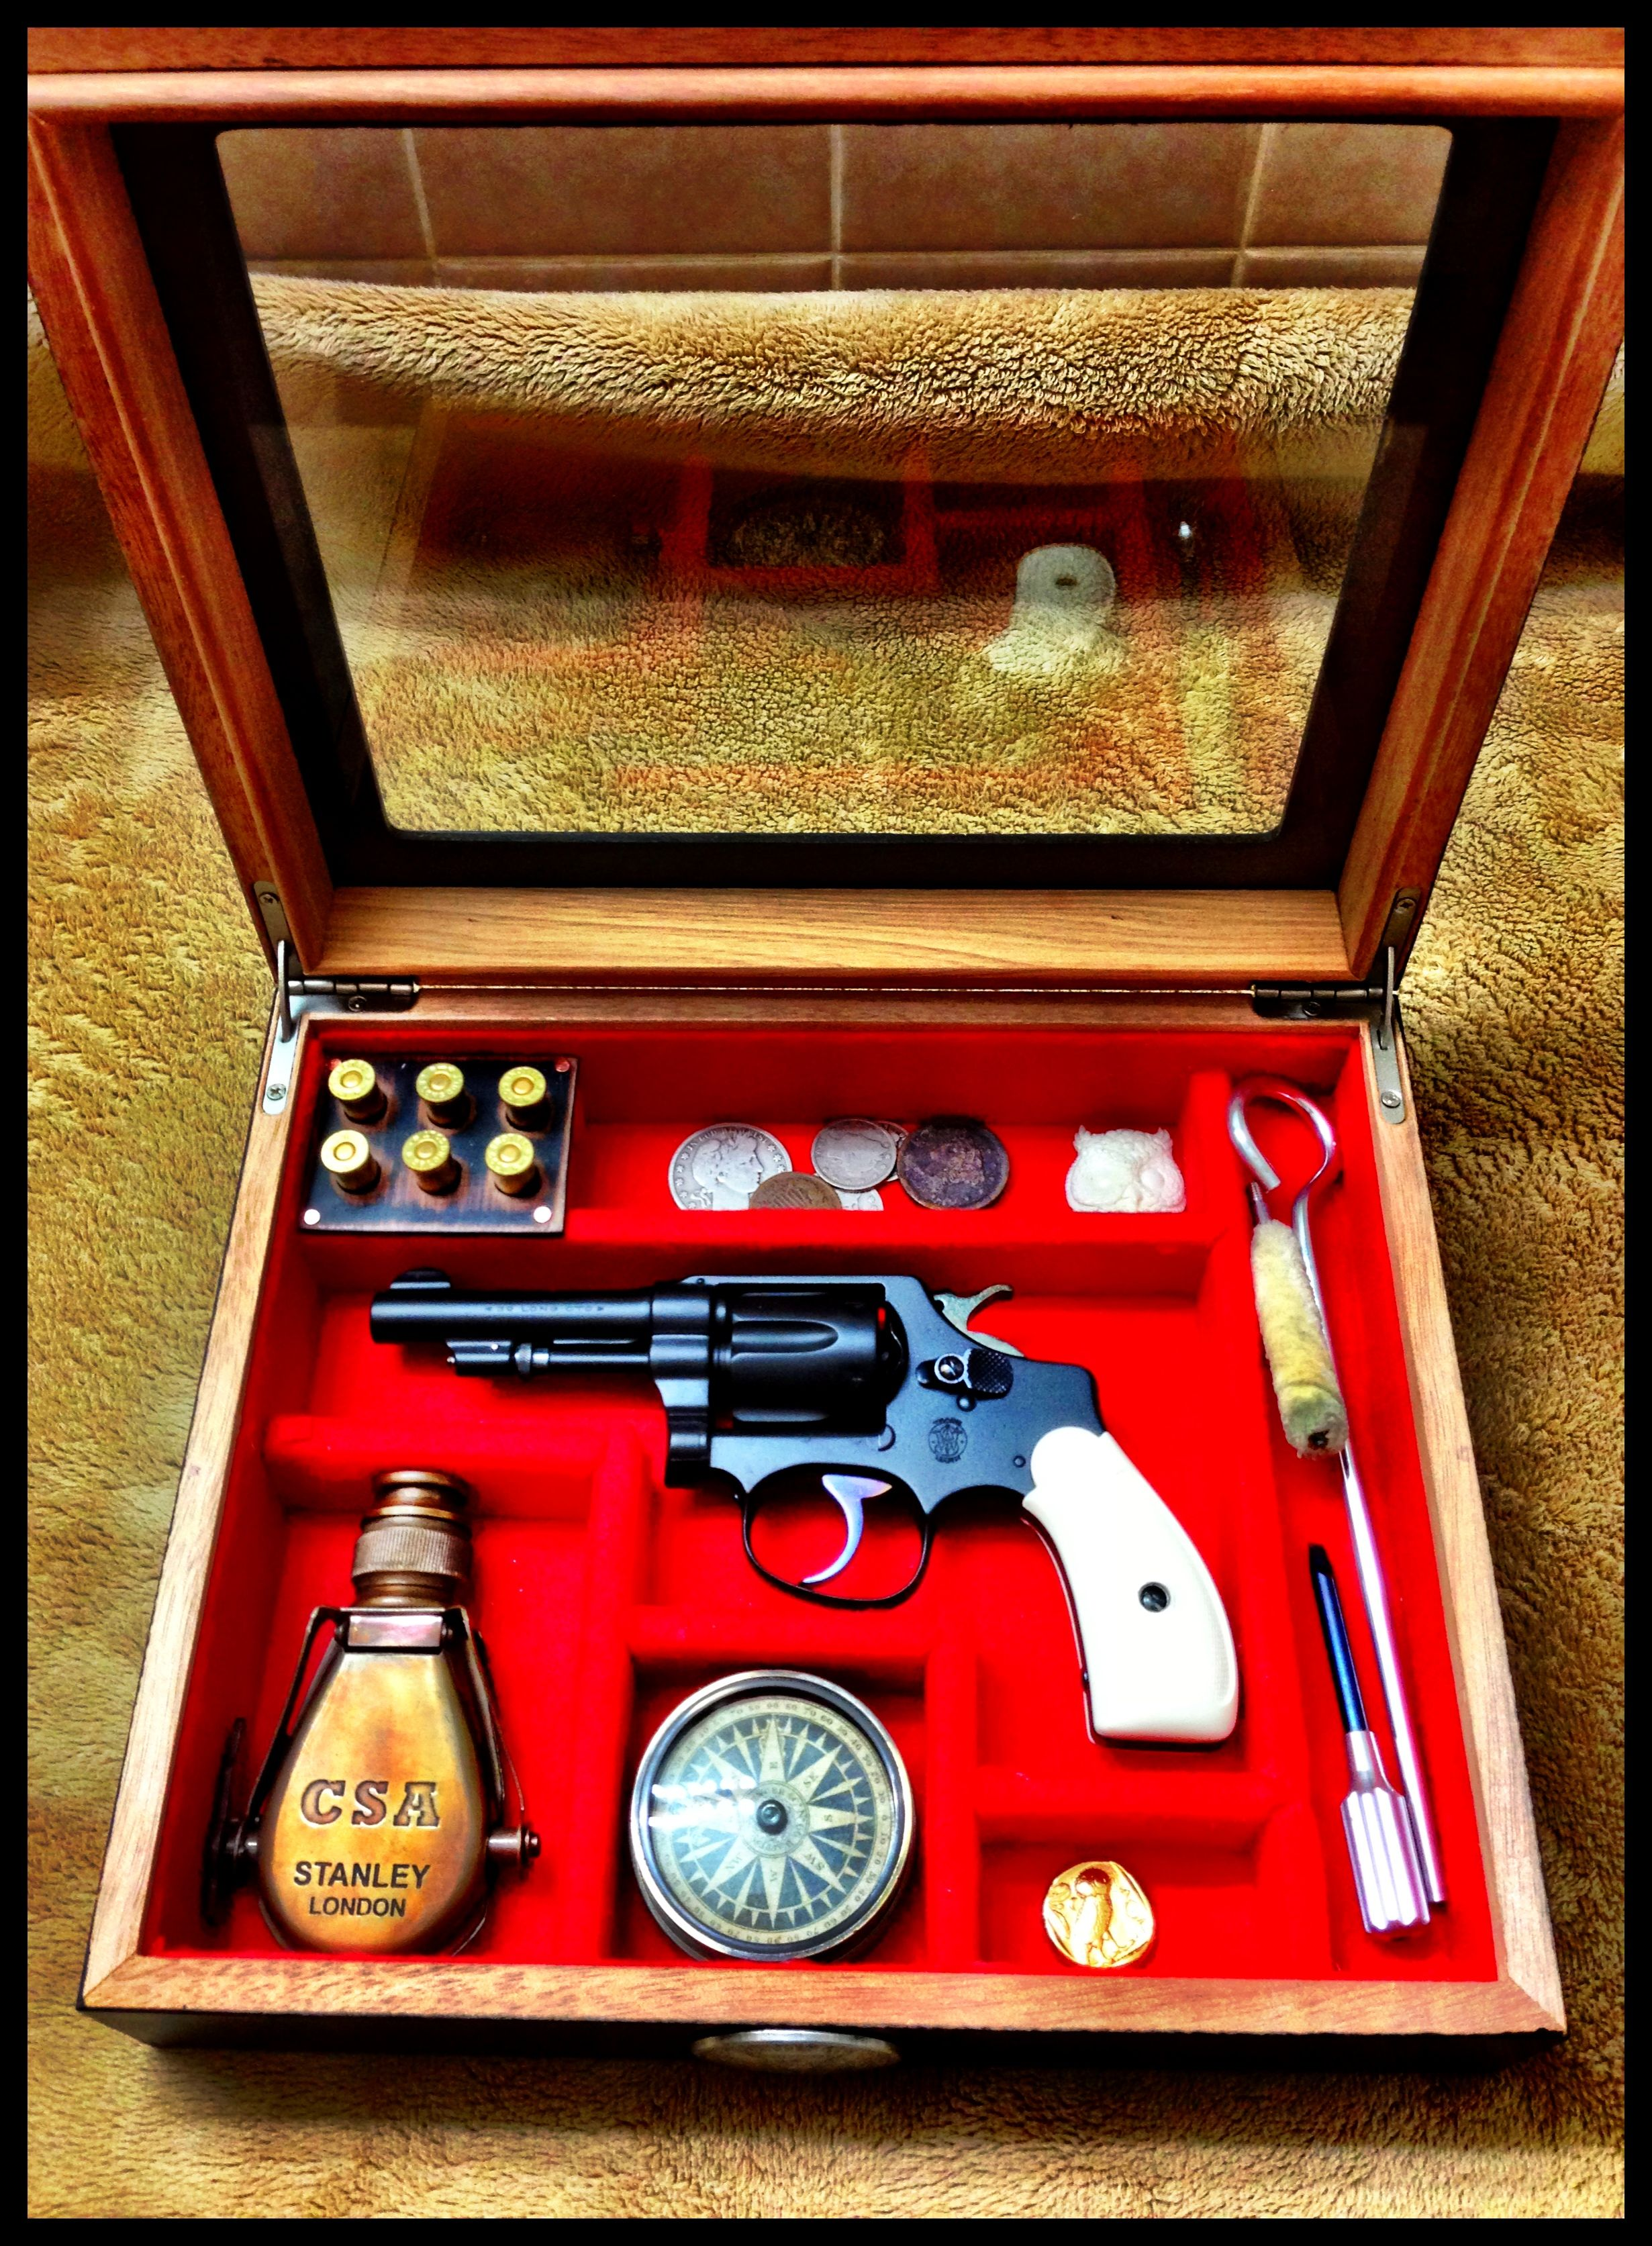 Double pistol handgun revolver gun display case cabinet rack shadowbox - Display Case For My Smith Wesson Long Hand Ejector By John Black Find This Pin And More On Guns